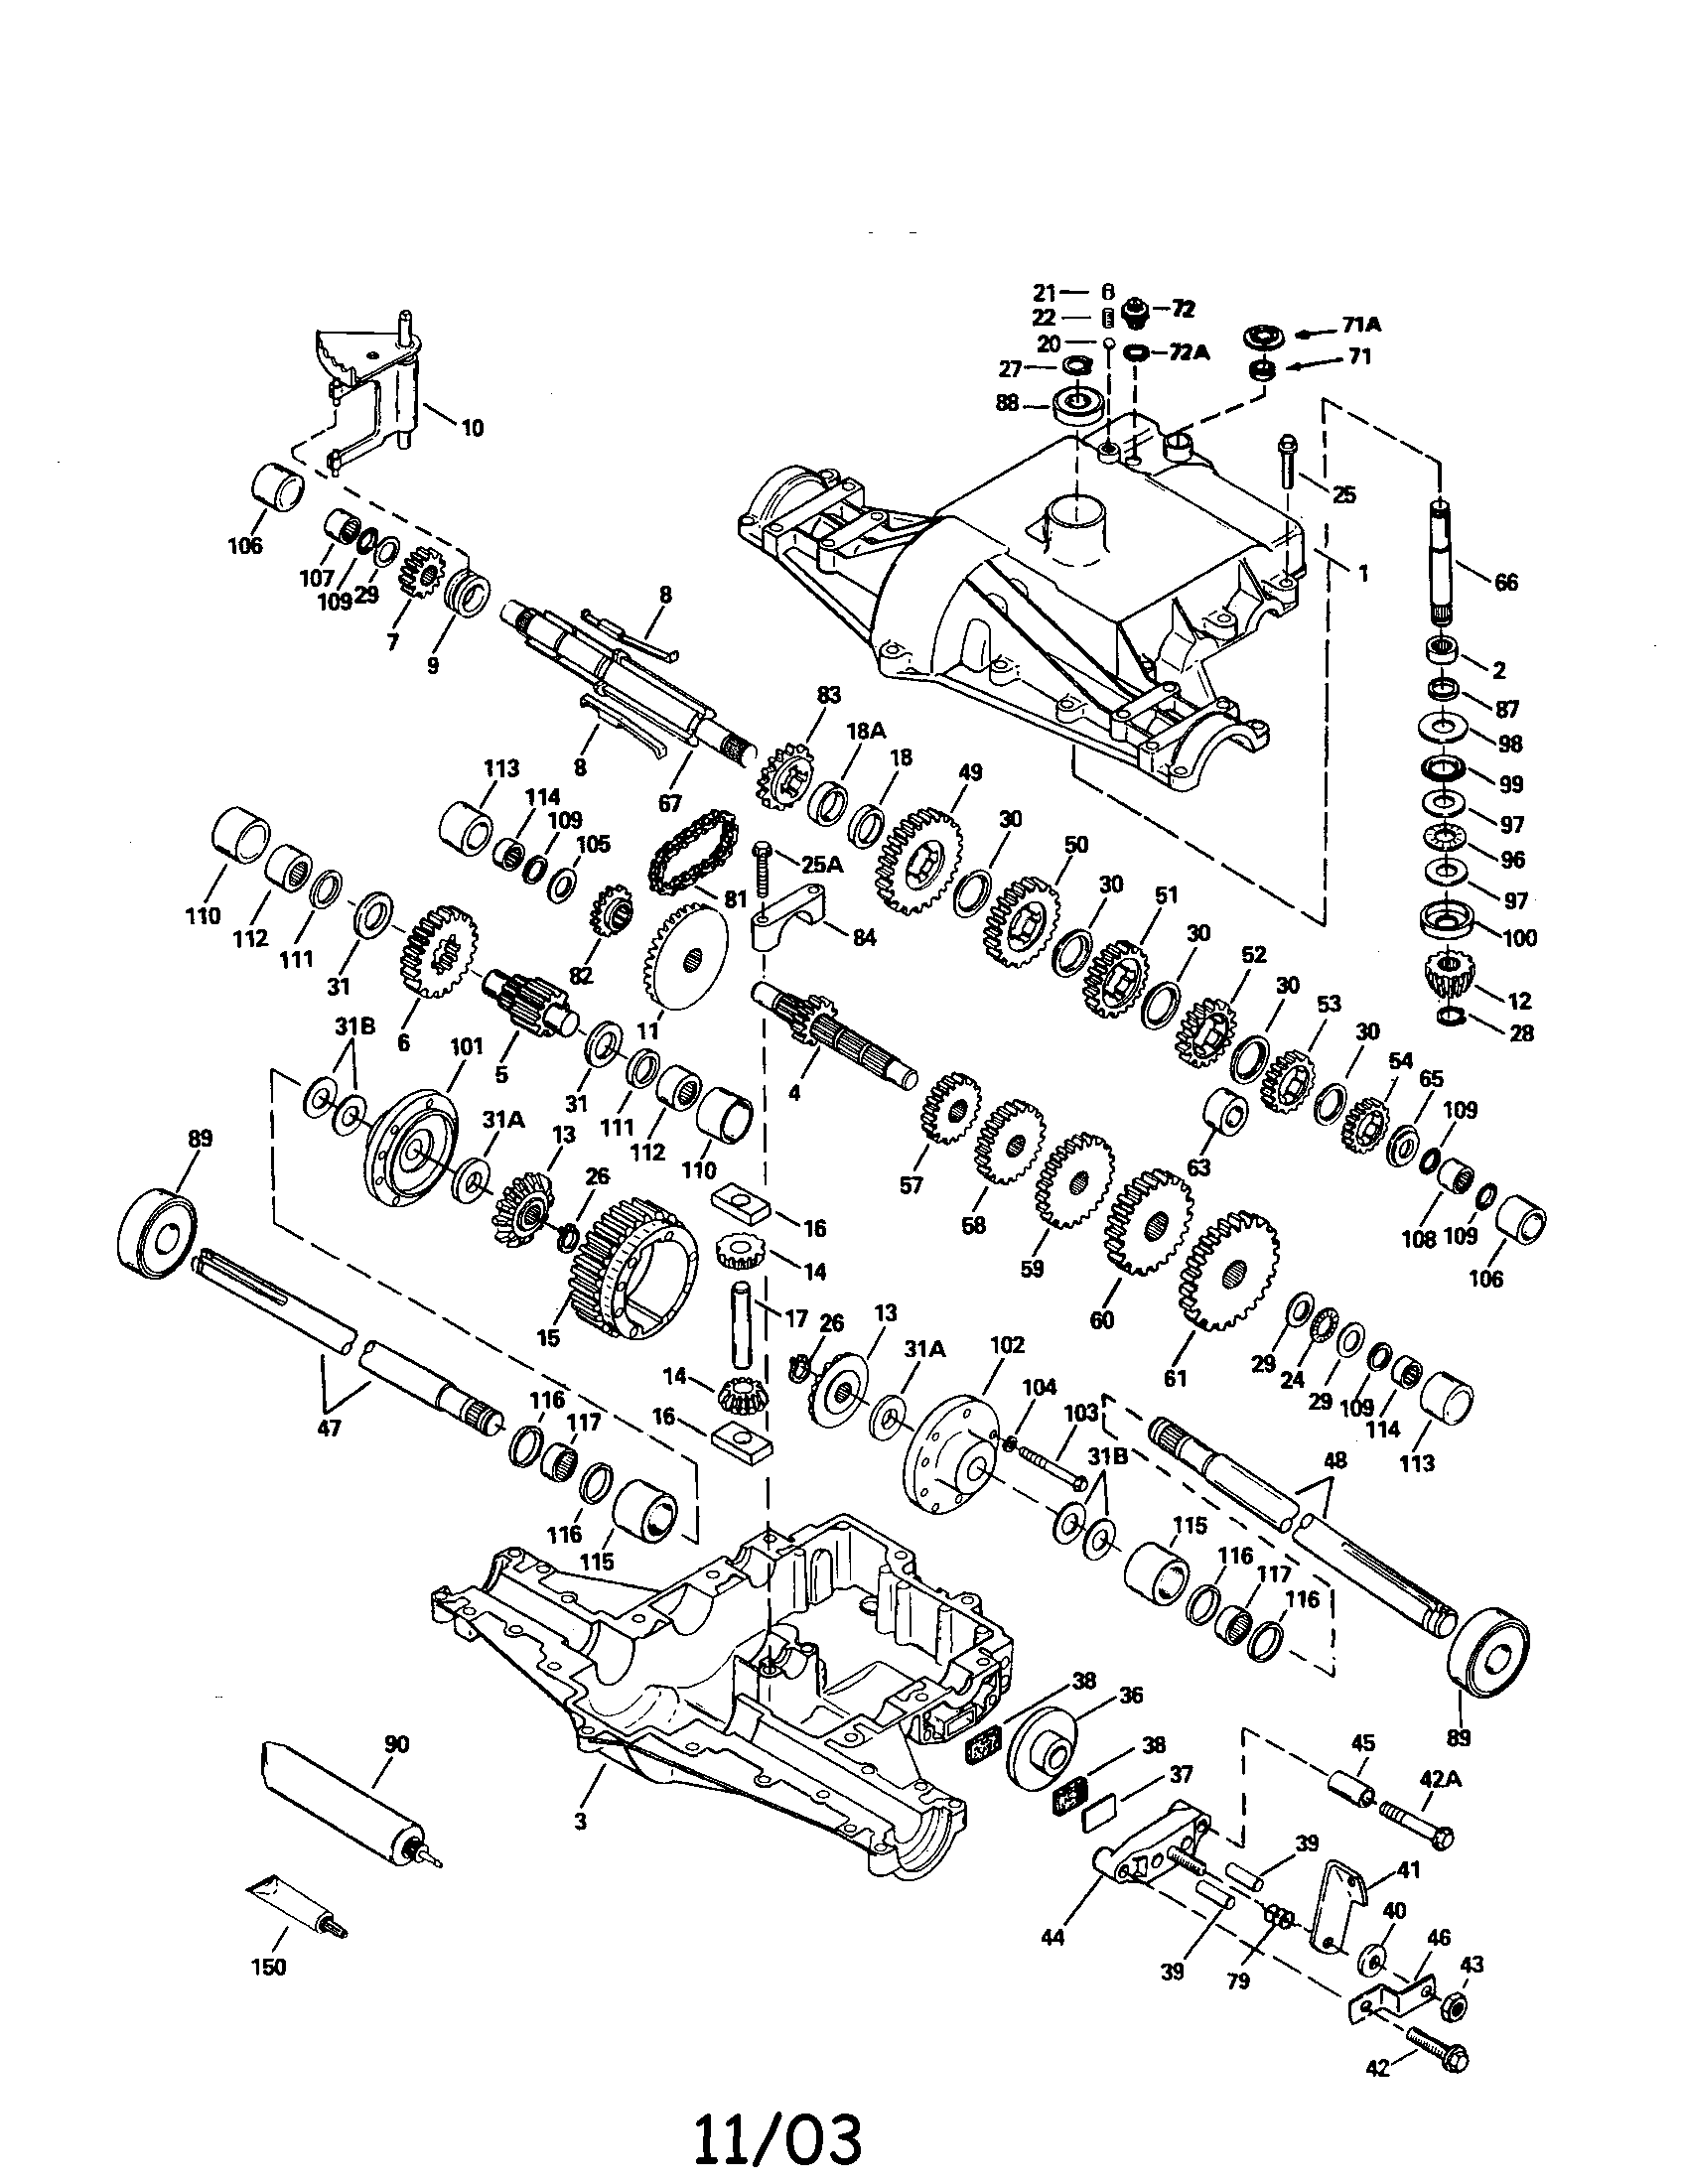 TRANSAXLE 820-016B (71/143) Diagram & Parts List for Model